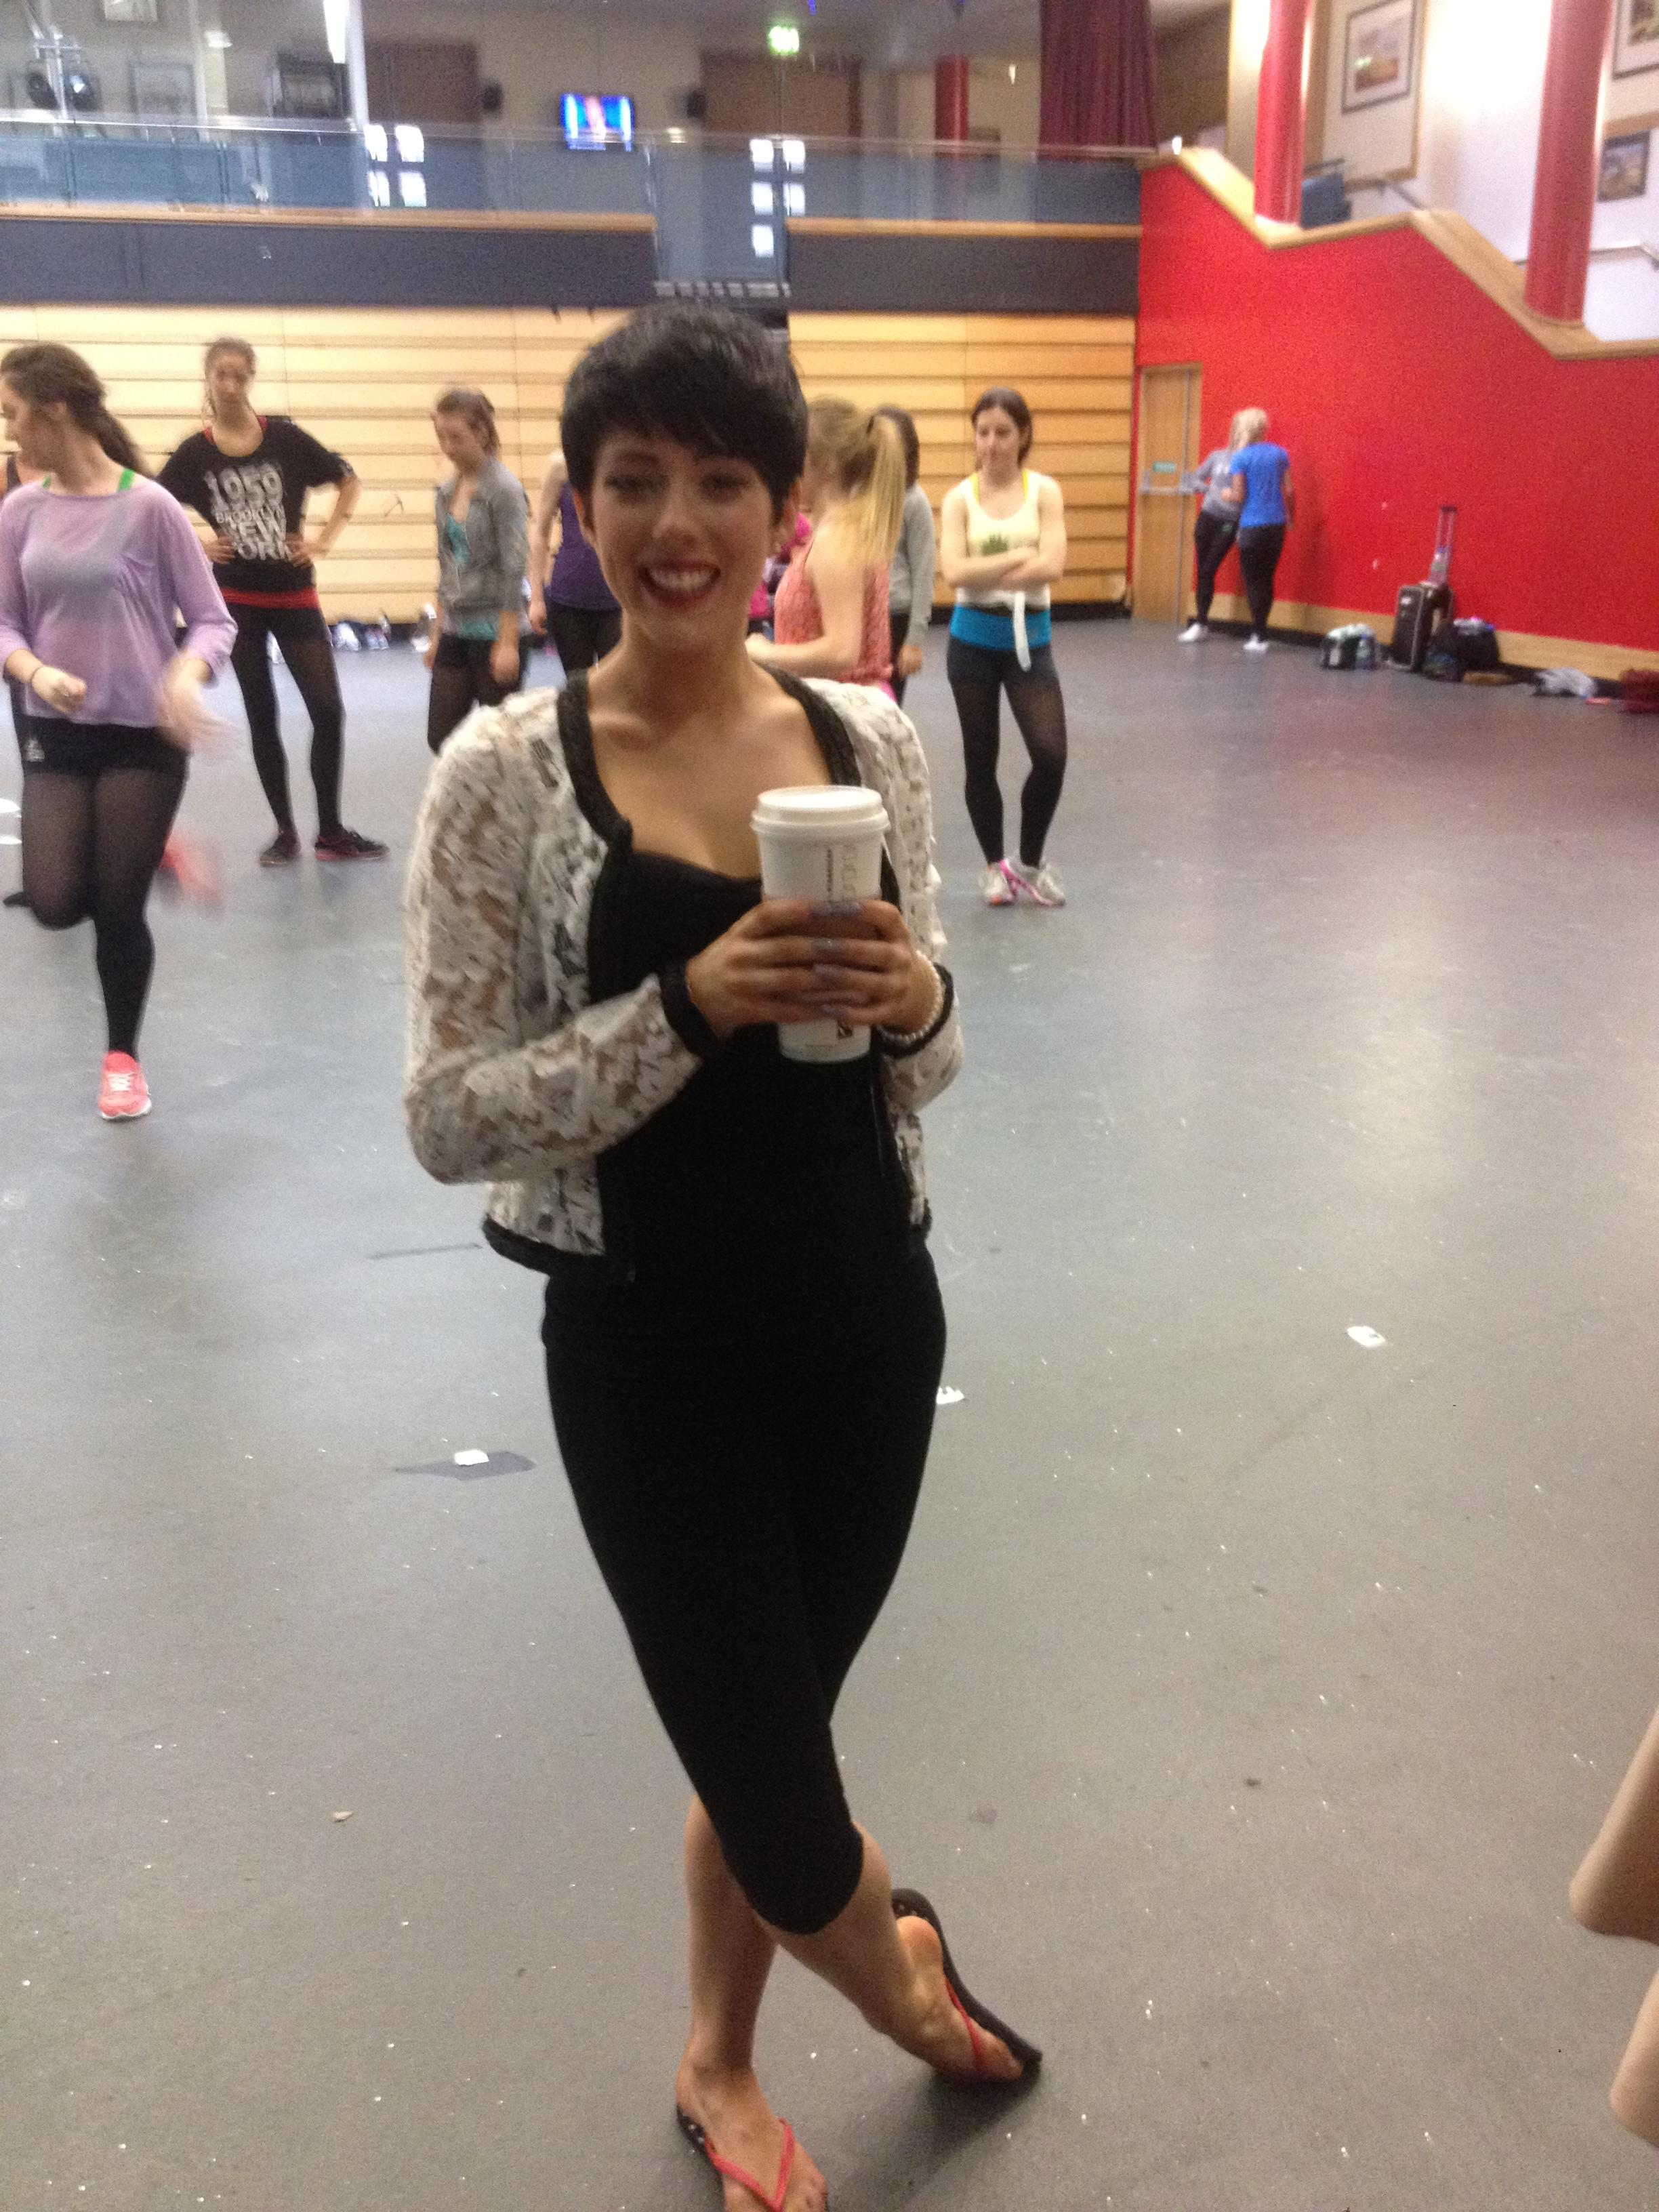 Ciara sexton working hard on choreography take the for 1234 get on the dance floor actress name